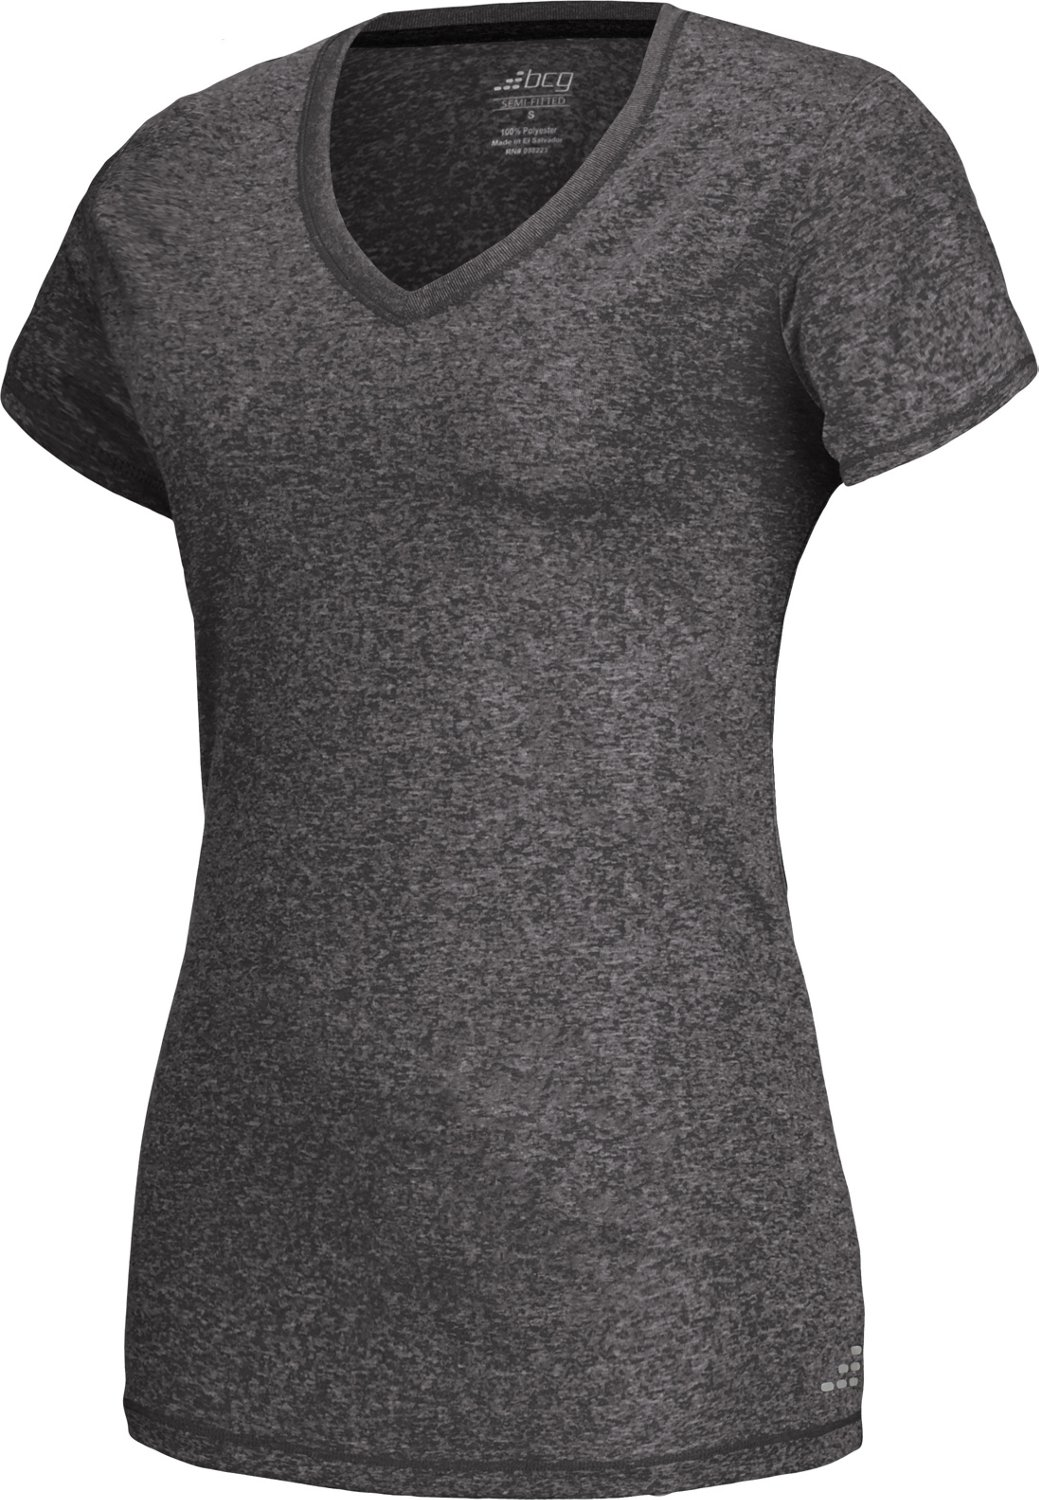 684c7393249d0 Display product reviews for BCG Women's Heather V-neck Training Tech T-shirt